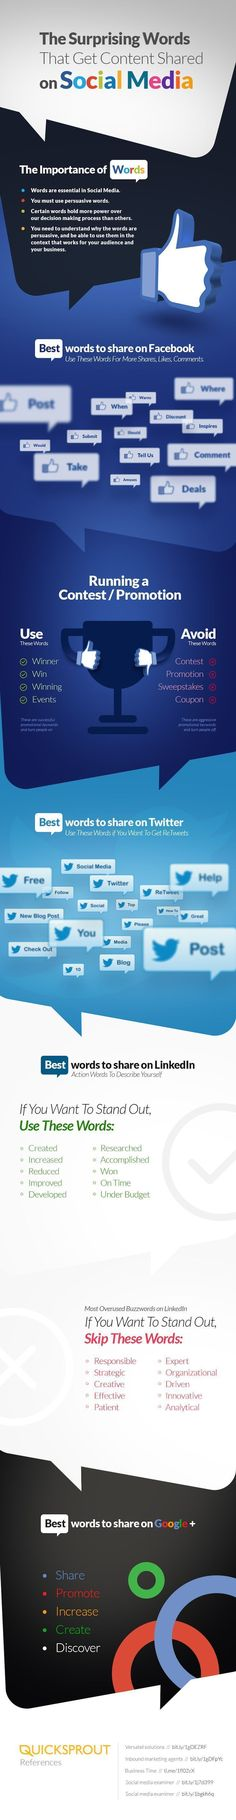 Wondering what to say to get your blog posts shared on social media? Check out this great infographic to see what WORDS catch attention and will help you your content shared. Courtesy of: Quick Spr...